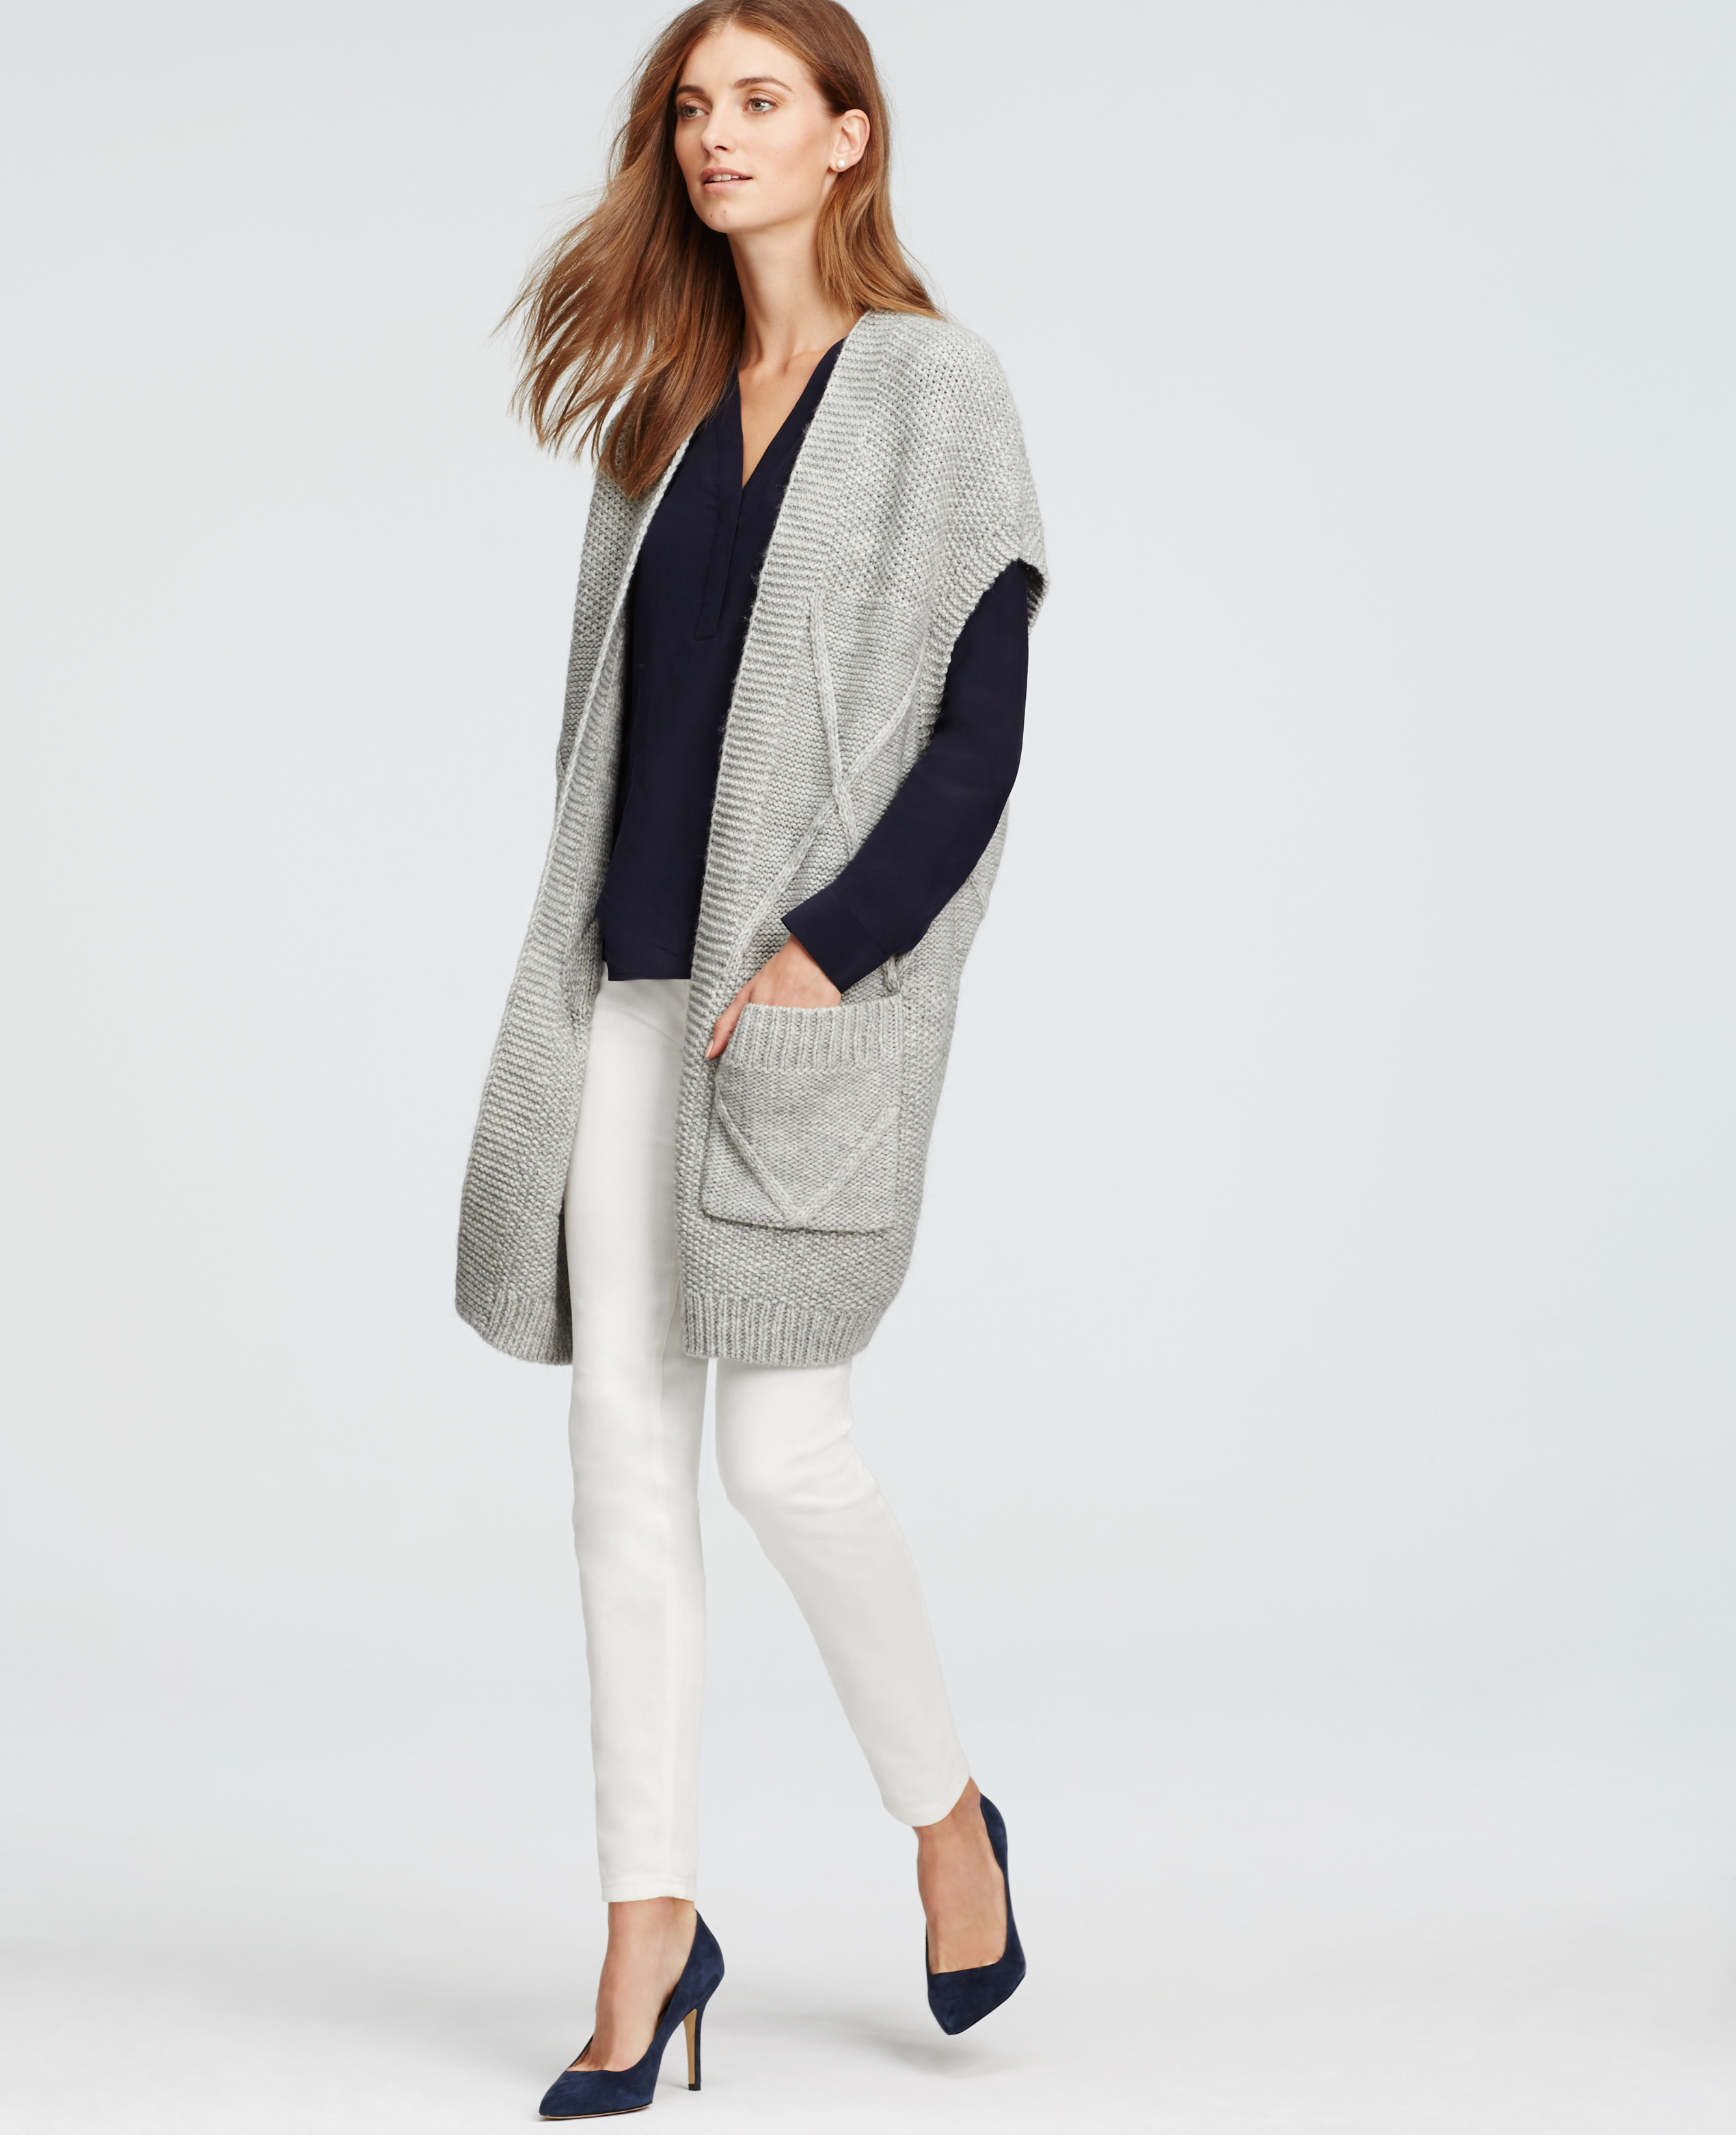 Ann taylor Long Sleeveless Cardigan in Gray | Lyst